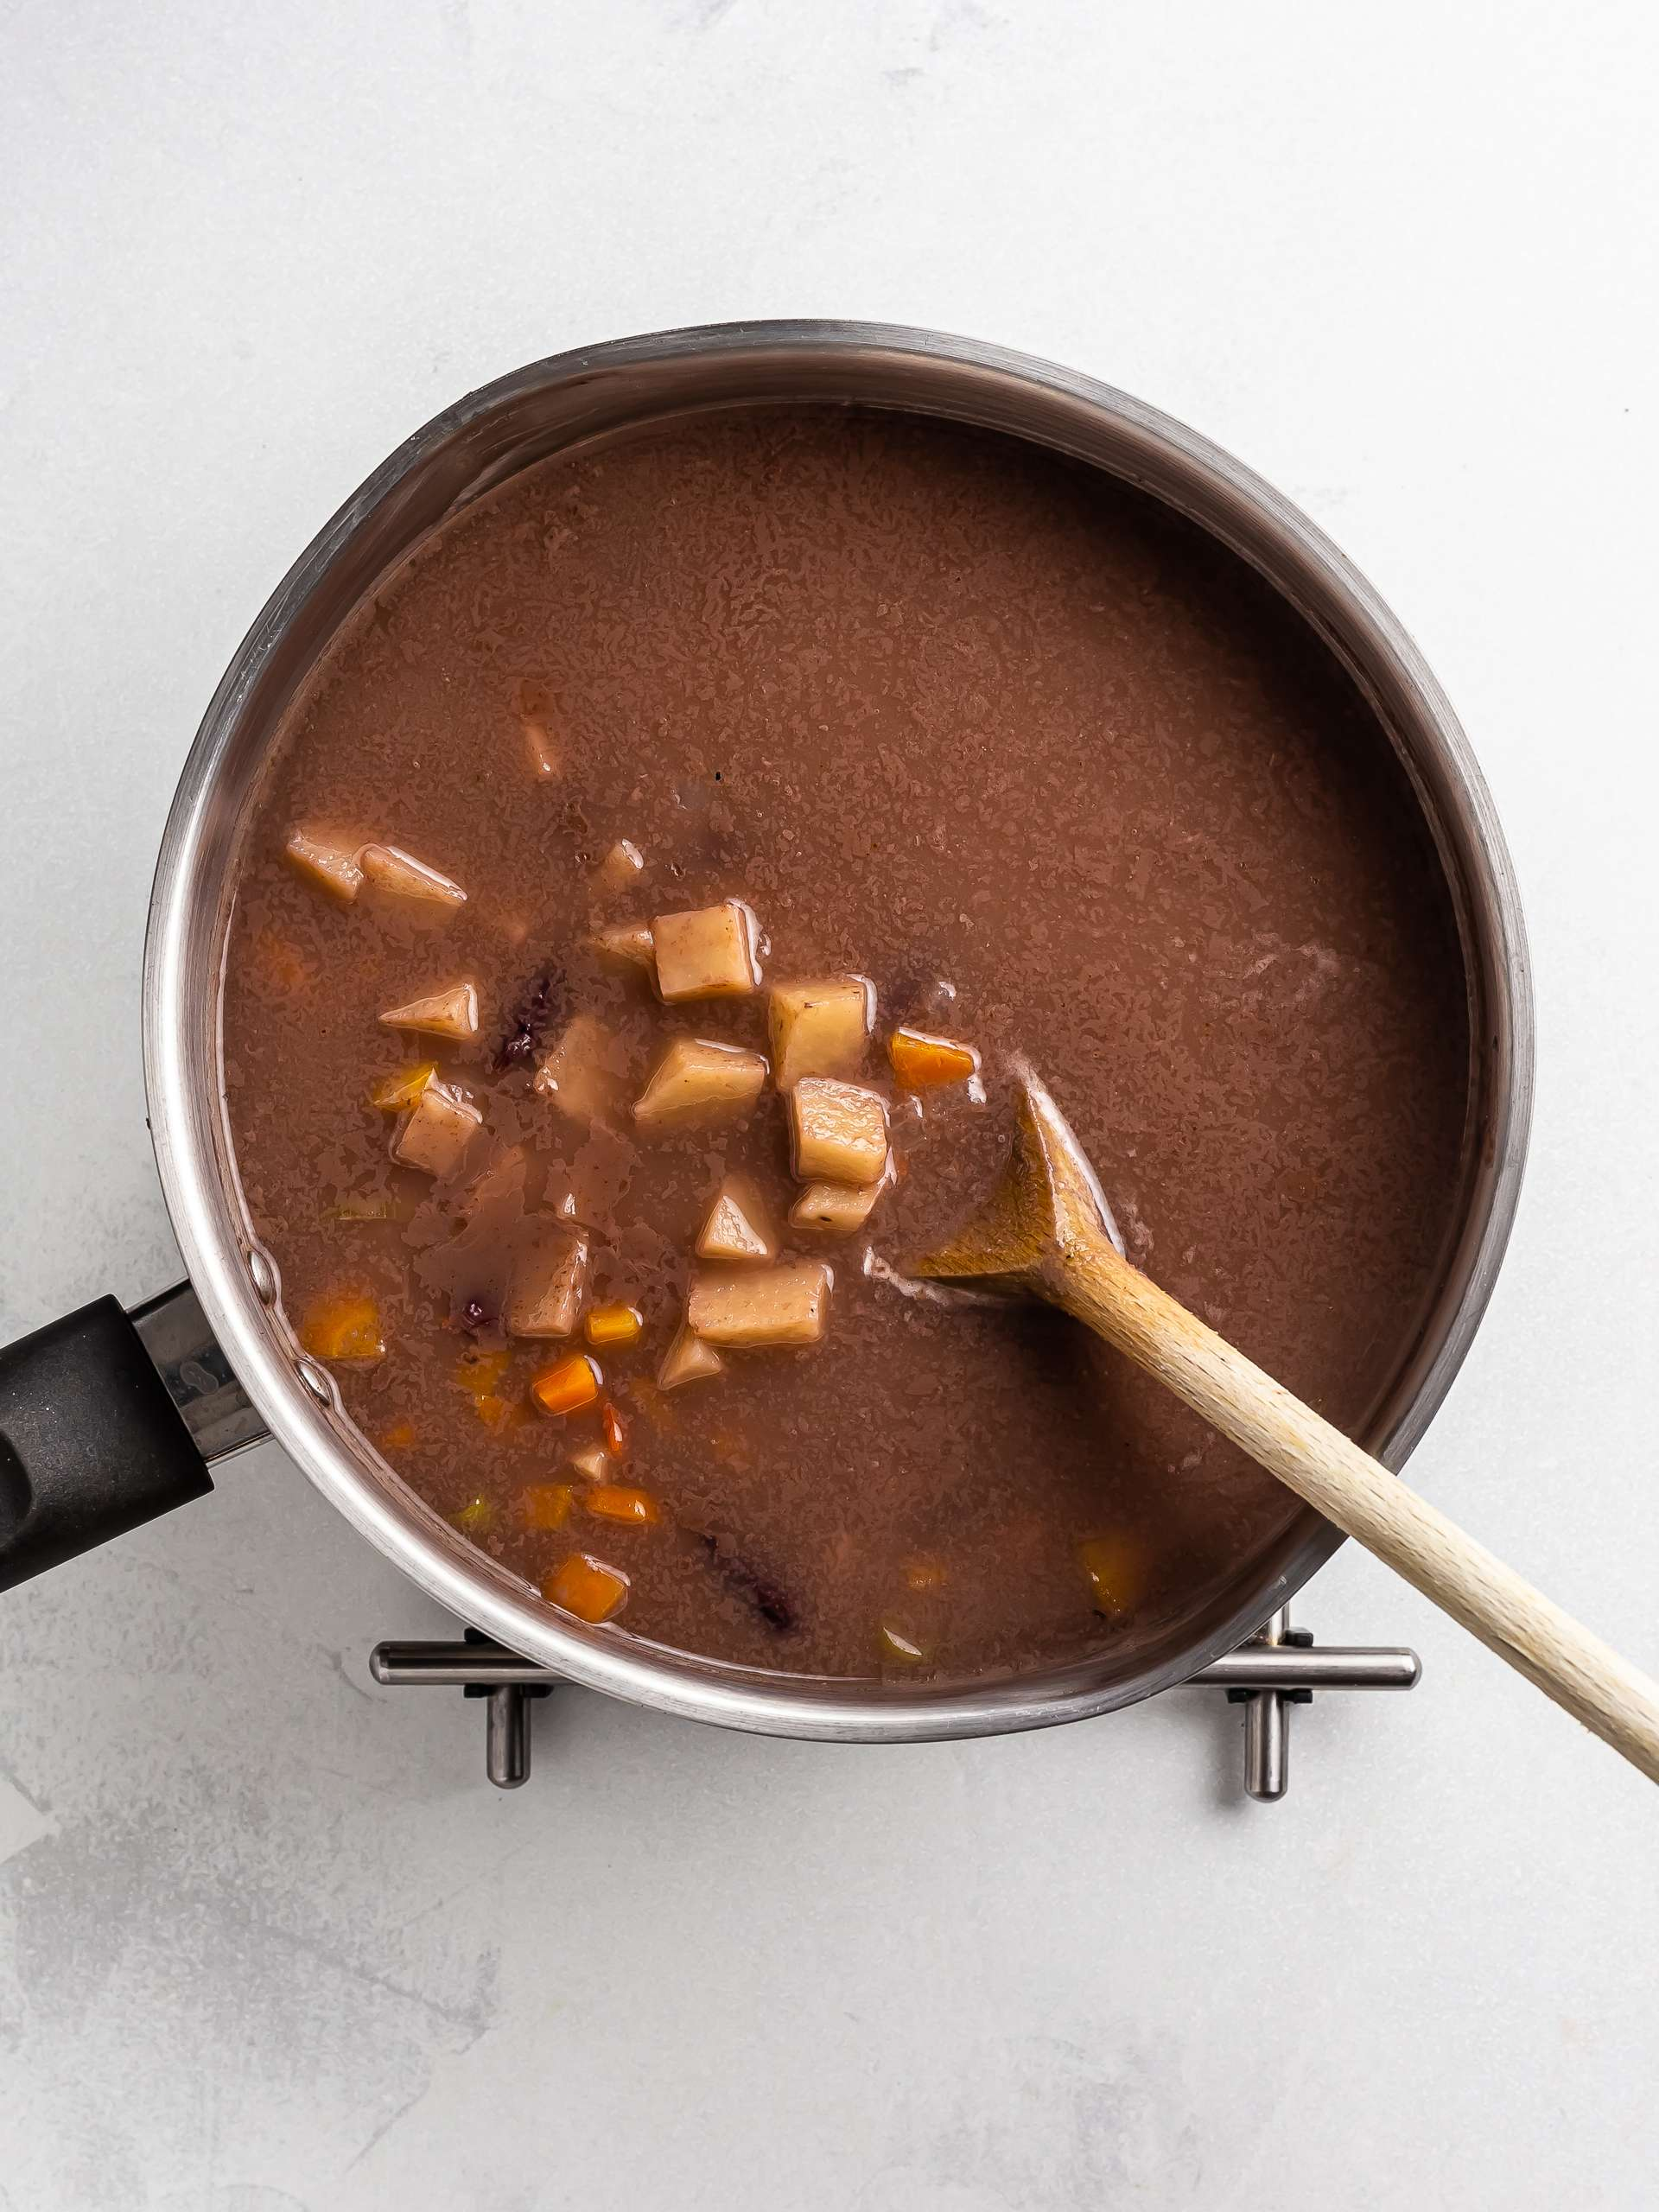 red pea soup cooking in a pot with yam and carrots